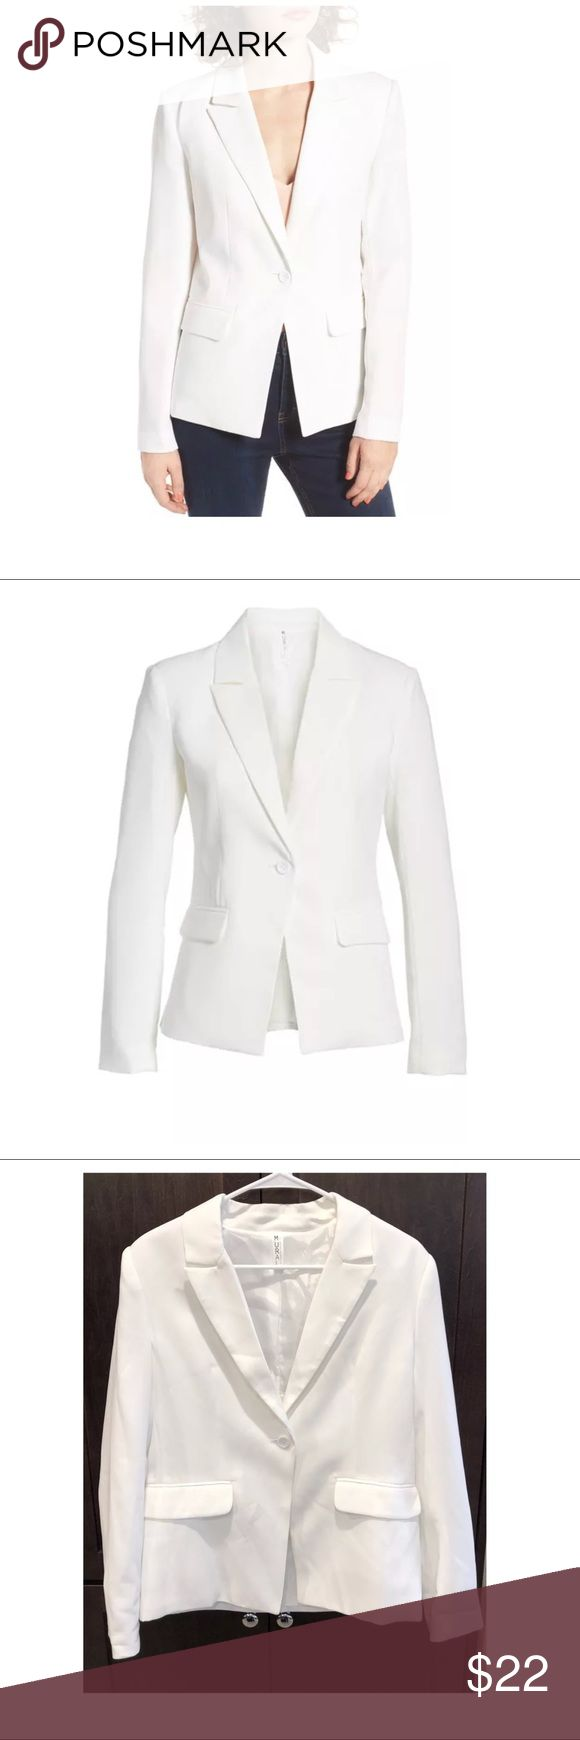 """$75 Mural for Nordstrom Structured Blazer in White $75 Mural for Nordstrom Structured Blazer in White ~Size L~  High end department store customer return. Retails for $75 + tax  Nice, gently worn  White One button closure Long sleeve Lined  Size L  Measures approximately: total length 24"""" bust across 20"""" sleeves 24""""- altered   PRICED TO SELL FAST! PLEASE ASK ANY QUESTIONS BEFORE PURCHASE, THANKS CHECK OUT MY OTHER DESIGNER HANDBAGS AND CLOTHING! Mural Jackets & Coats Blazers"""